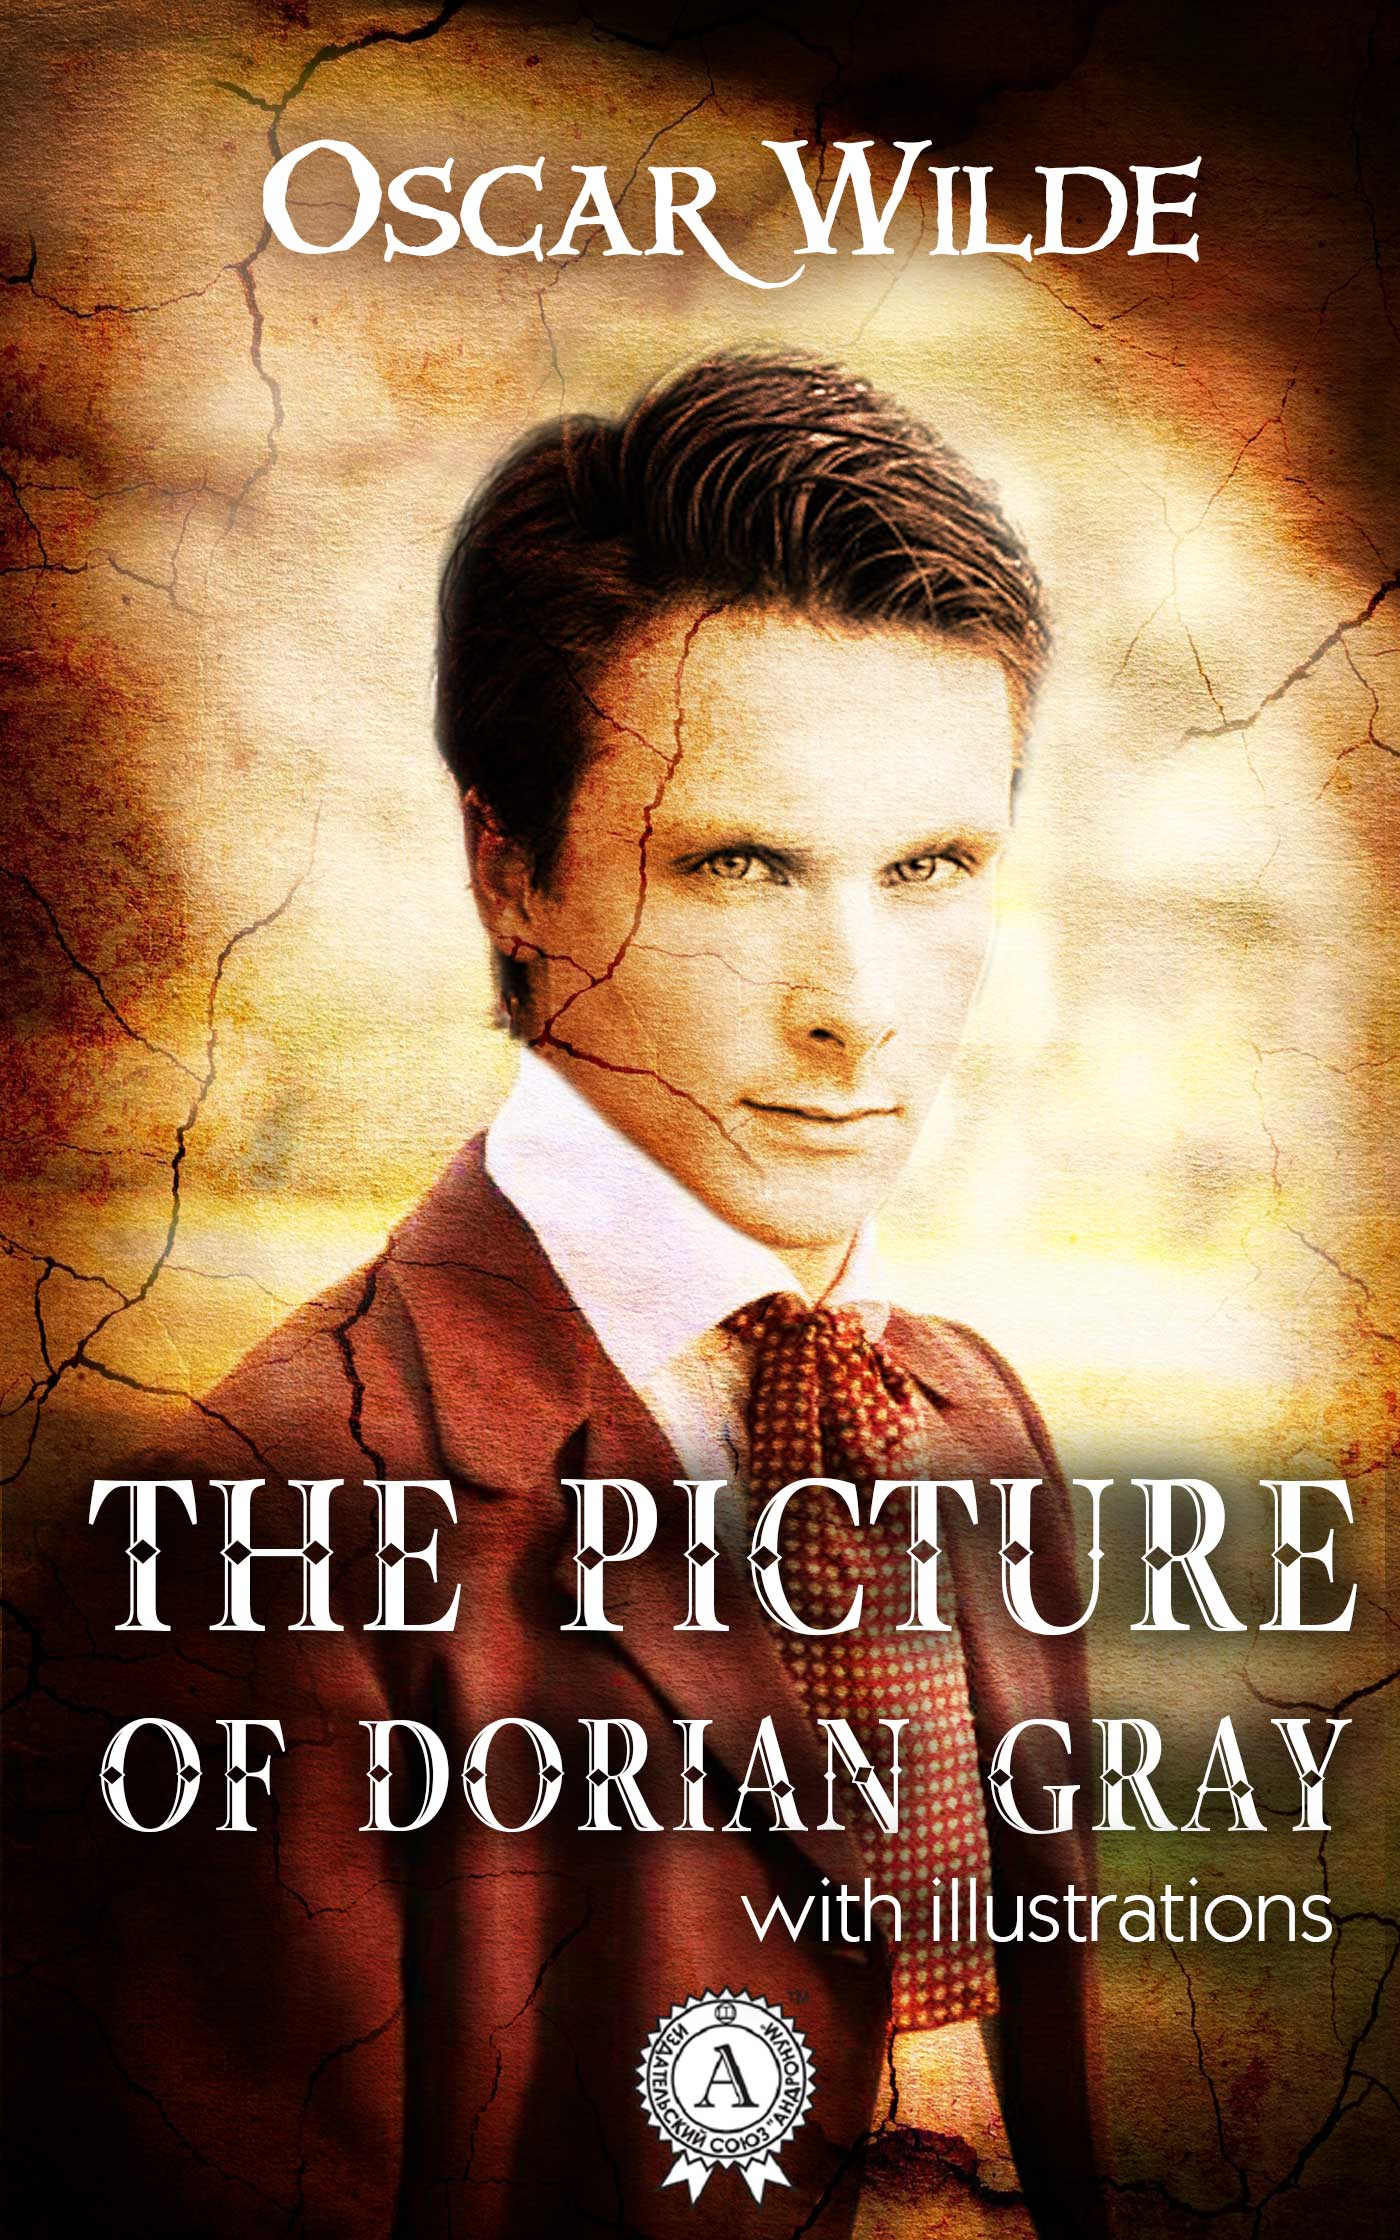 the portrayal of moral corruption in oscar wildes story the picture of dorian gray Of dorian gray is the story of one beautiful, innocent young man's seduction, moral corruption, and oscar wild touches this subjects in the picture of dorian gray the book was first published in wilde's original portrayal of dorian as a wholesome, flawless young person gives the reader a.